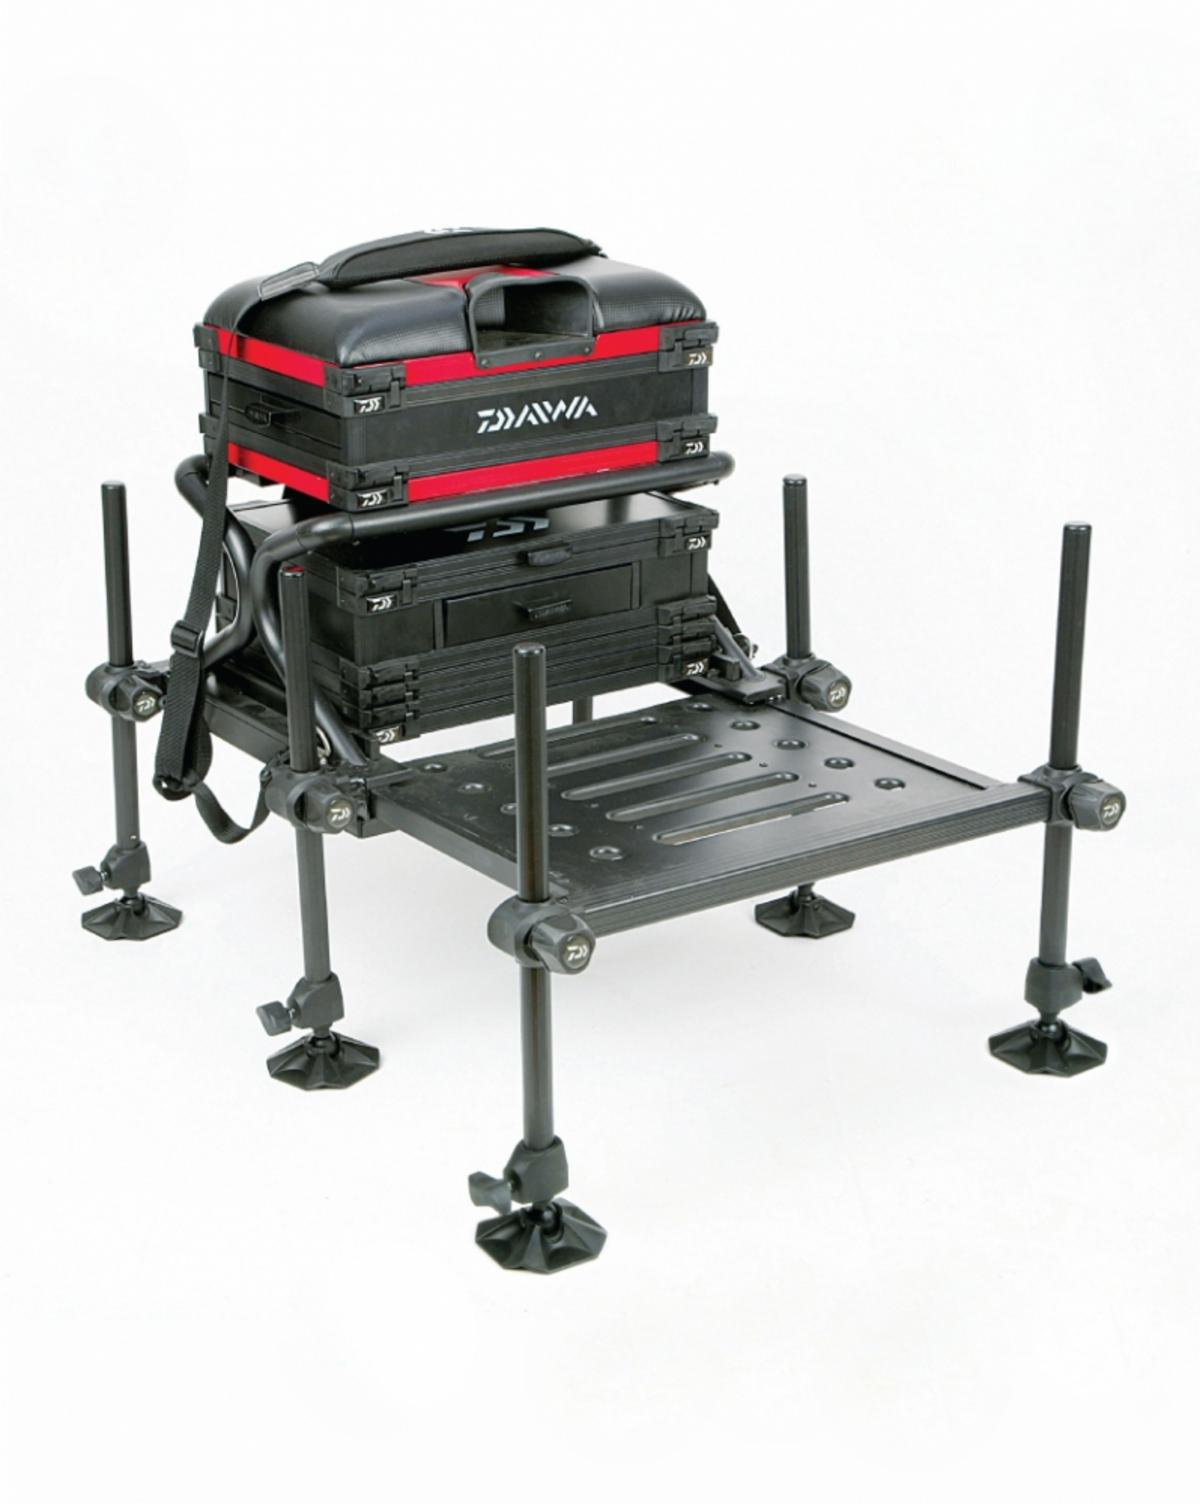 DAIWA TOURNAMENT X 250 SEAT BOX Red